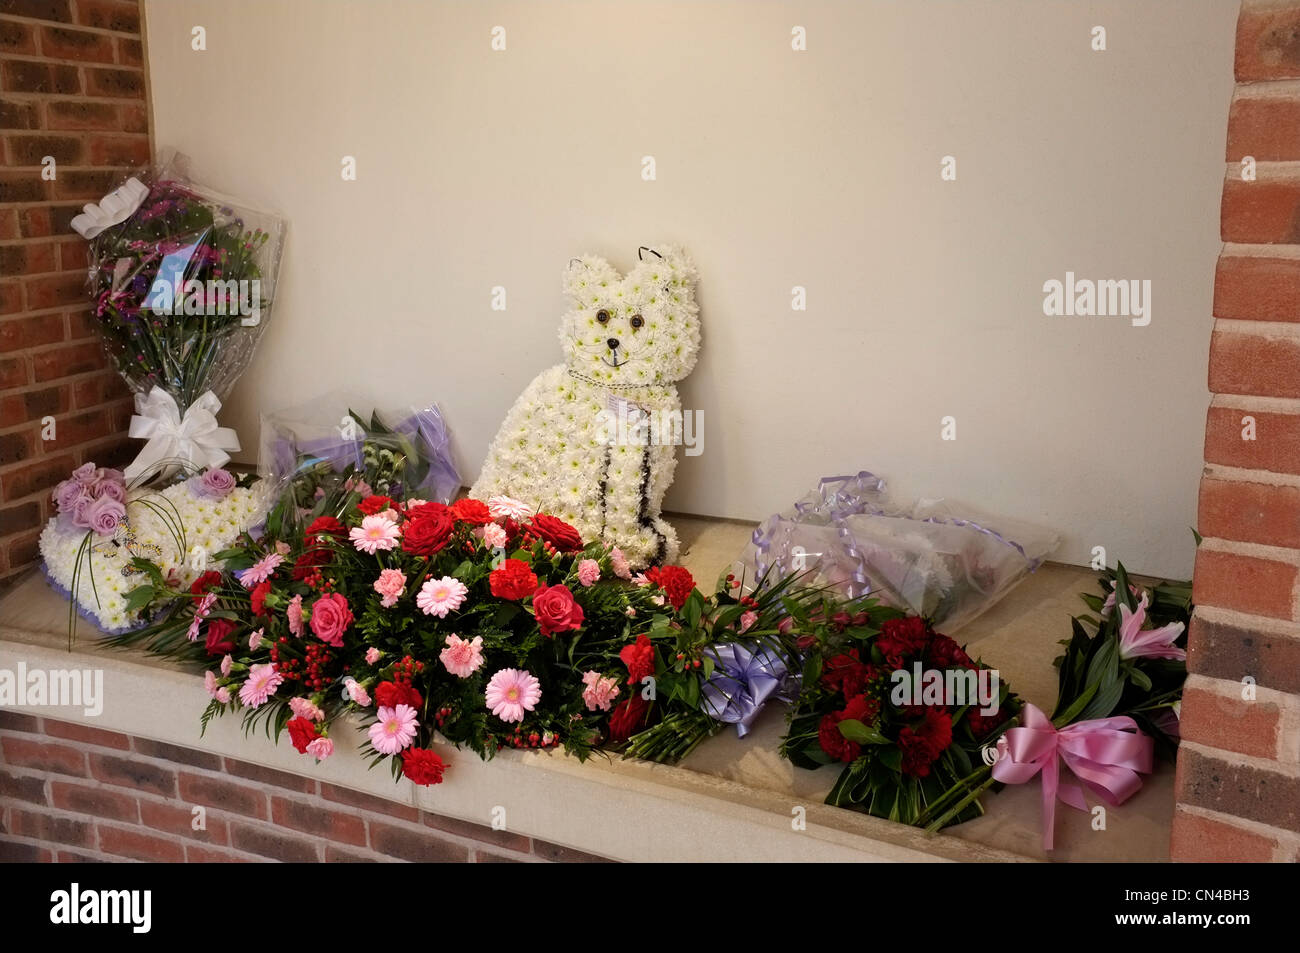 Funeral flower stock photos funeral flower stock images alamy funeral flower wreaths bedford uk 2012 stock image izmirmasajfo